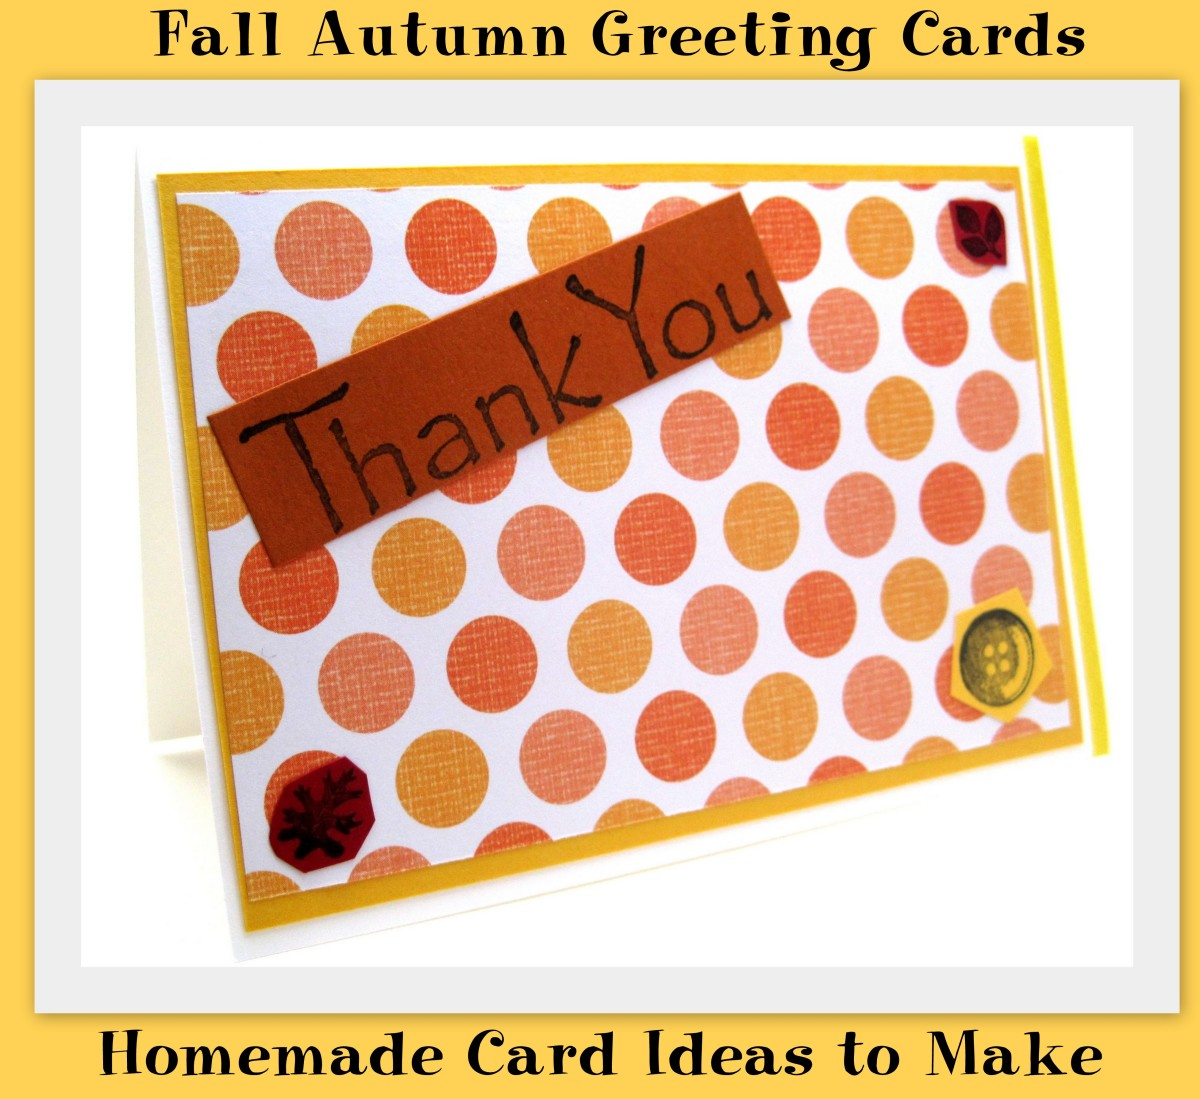 Fall Autumn Greeting Cards: Homemade Card Ideas to Make